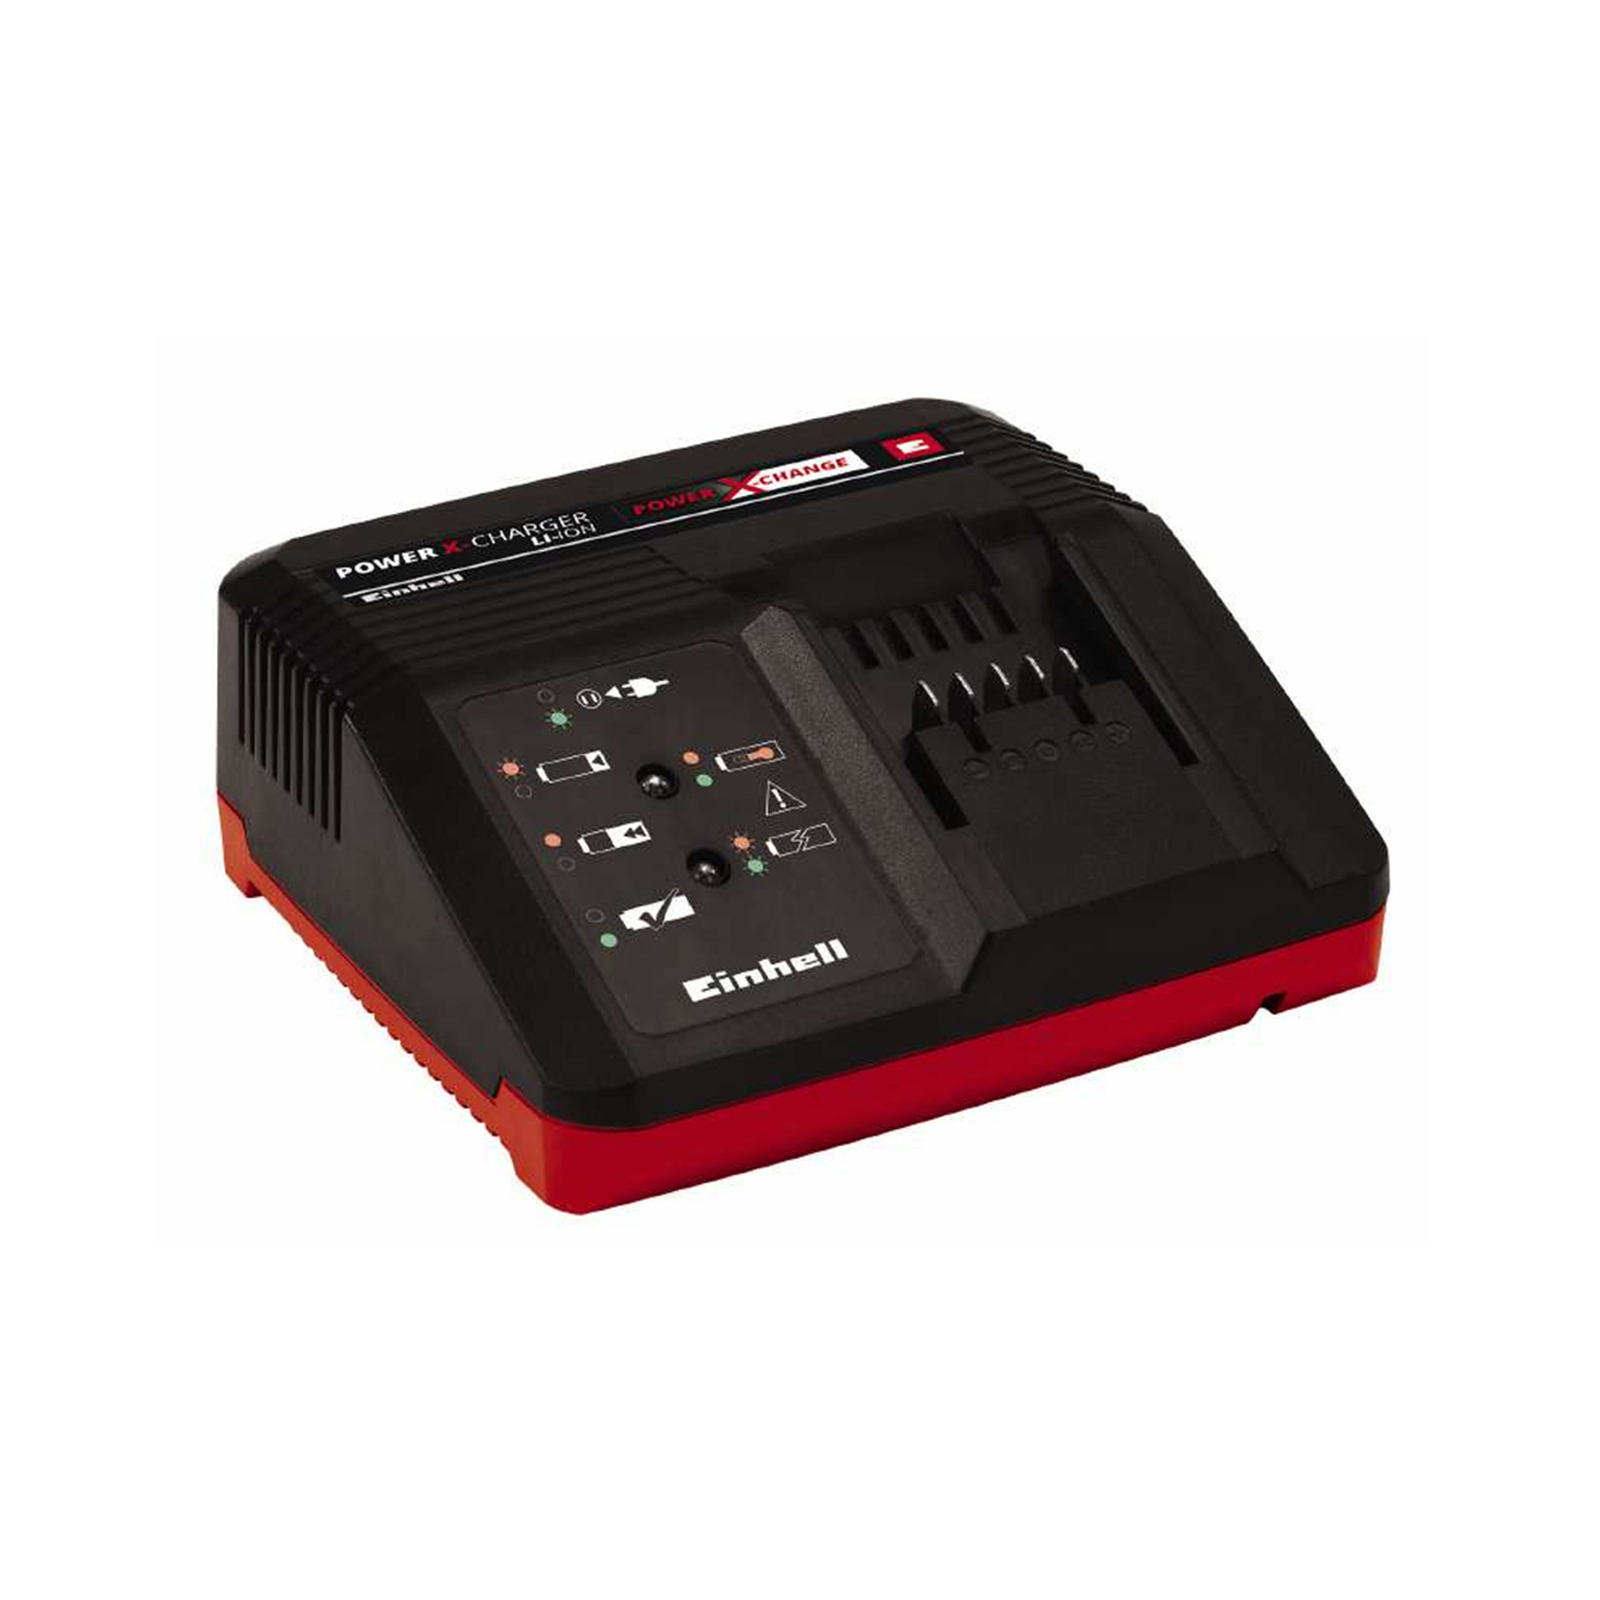 Einhell 18V 30min Power-X-Change Battery Charger for Power Tools